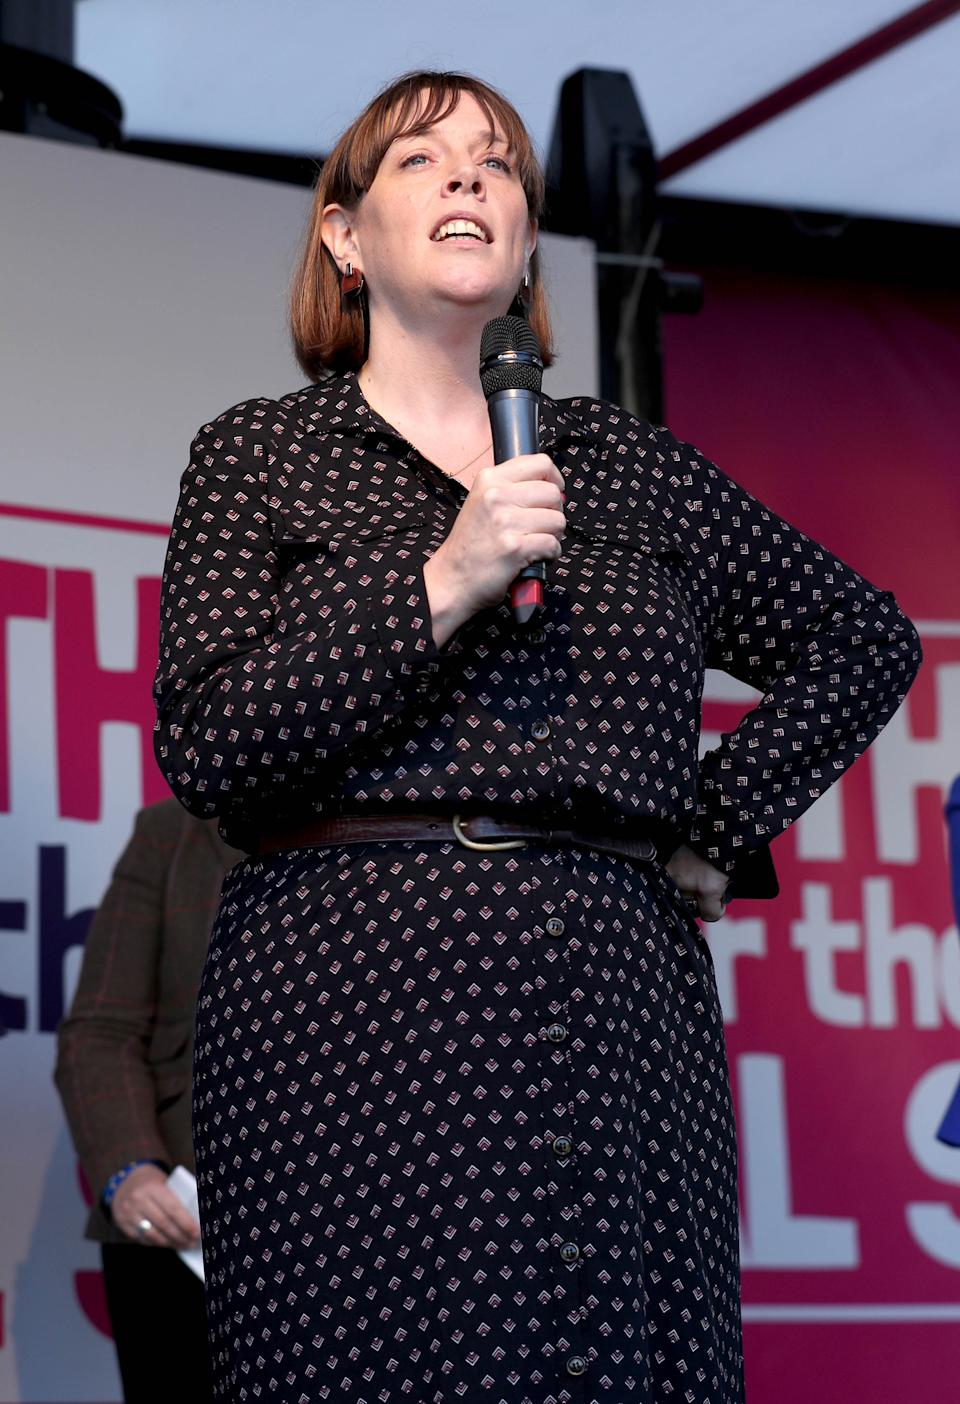 Labour MP Jess Phillips on stage during an anti-Brexit rally in Parliament Square in London, after it was announced that the Letwin amendment, which seeks to avoid a no-deal Brexit on October 31, was accepted, following Prime Minister Boris Johnson's statement in the House of Commons, on his new Brexit deal.